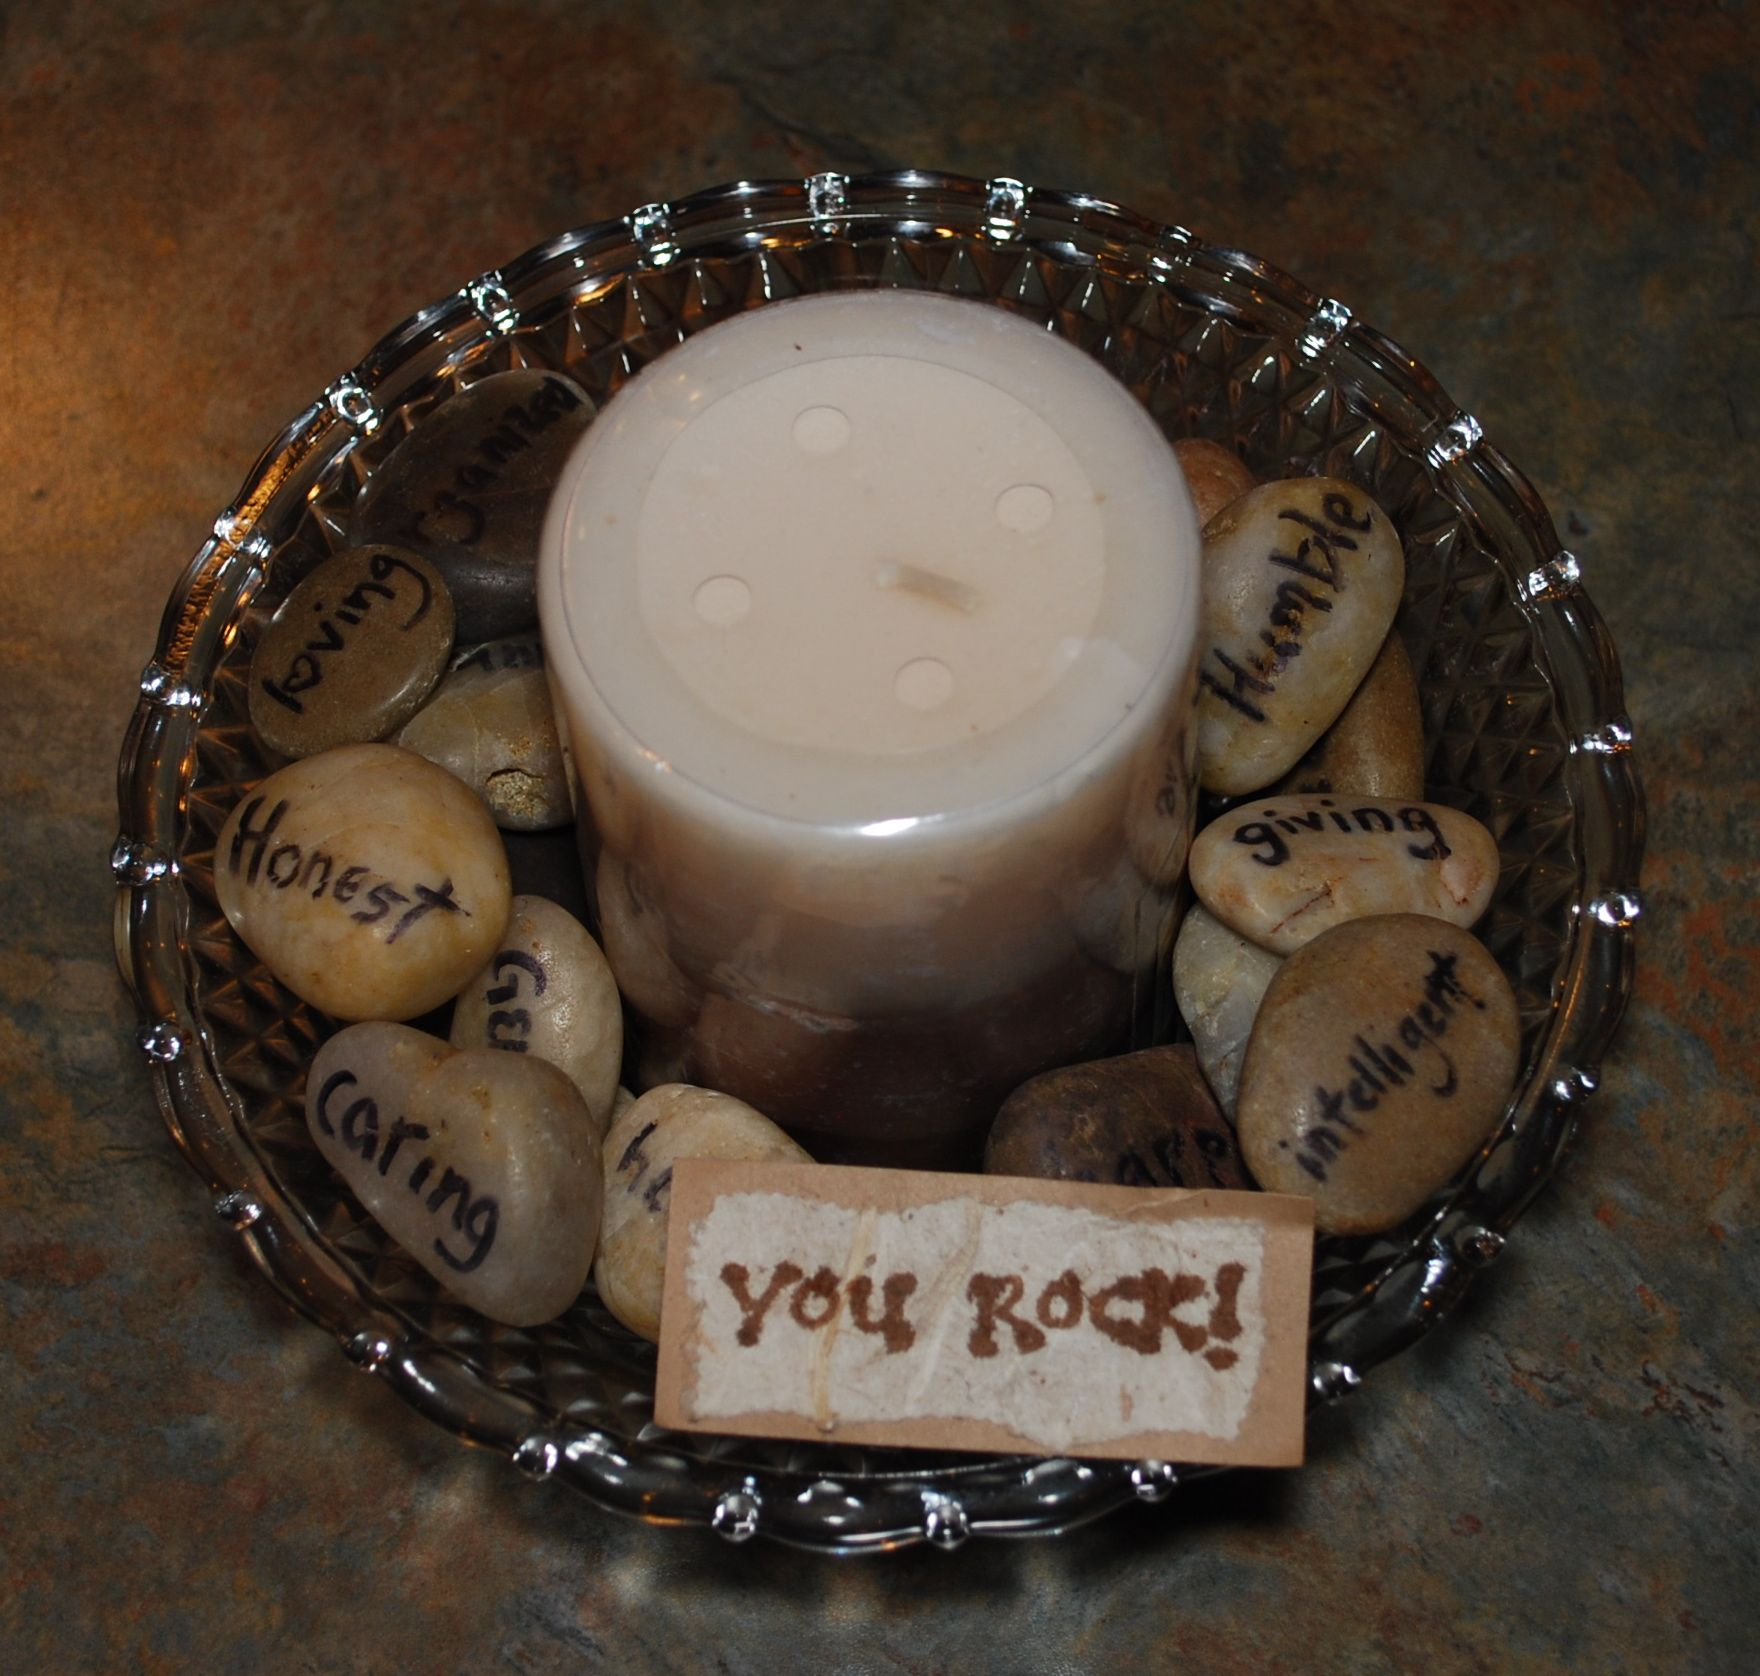 A Handmade Thank You Gift With Handwritten Words On Stones